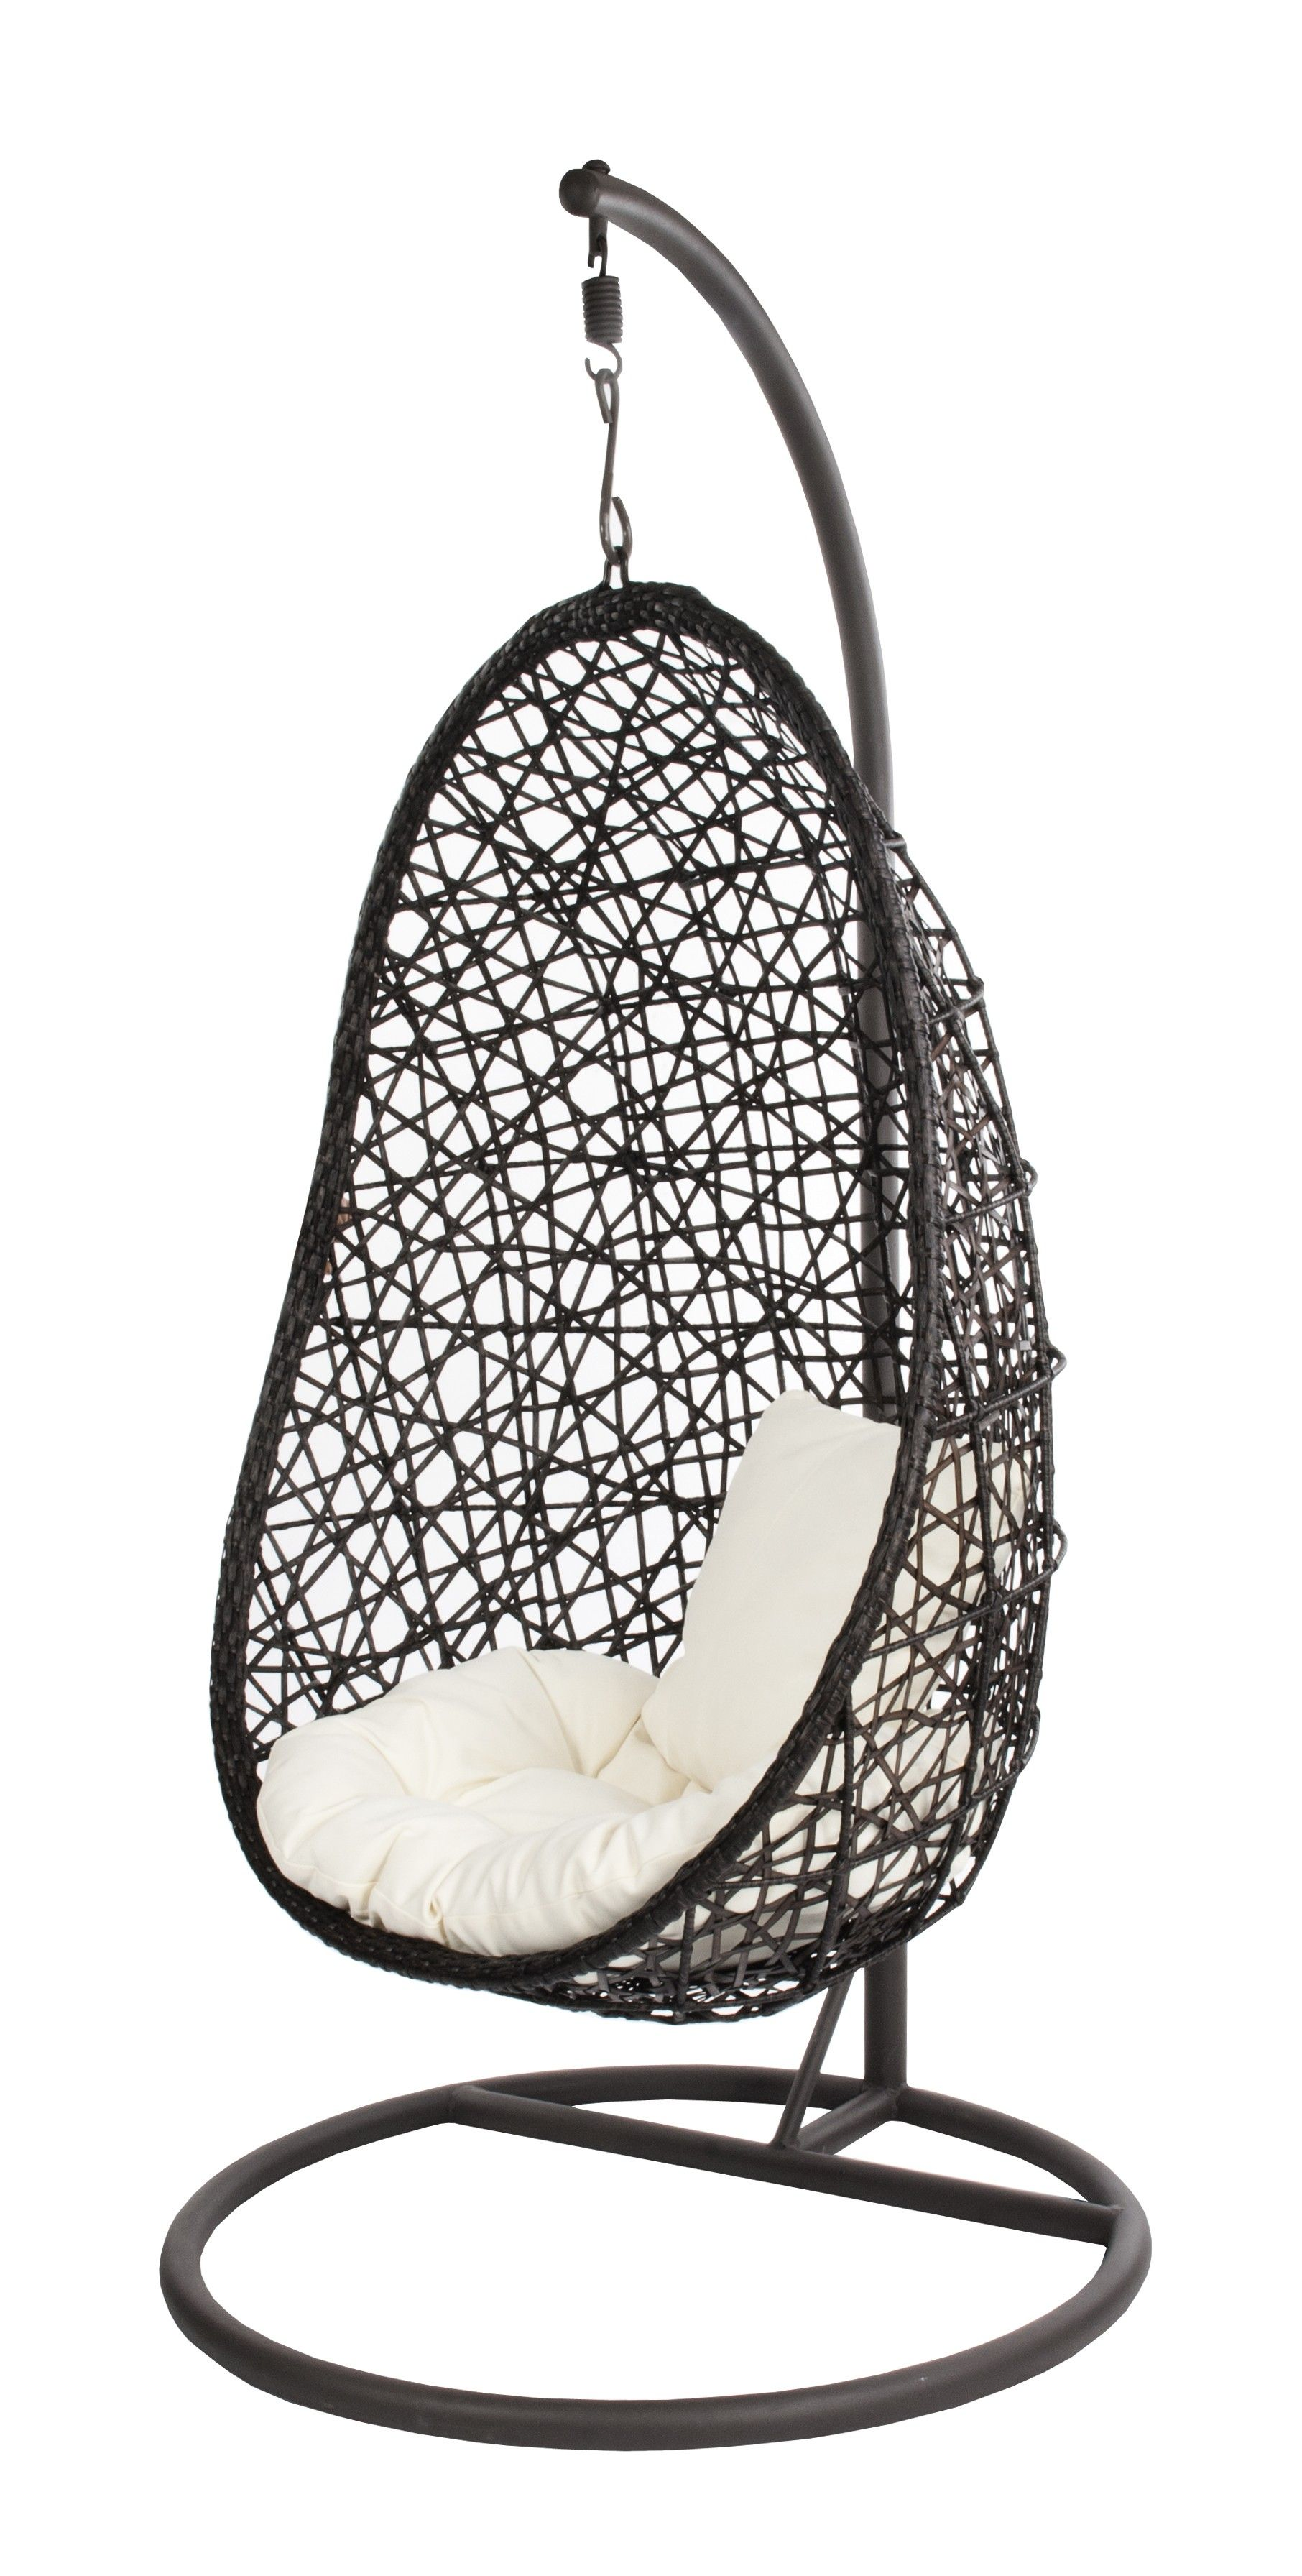 Hang Chair Hanging Chair Brown Egg Giardino Http Www